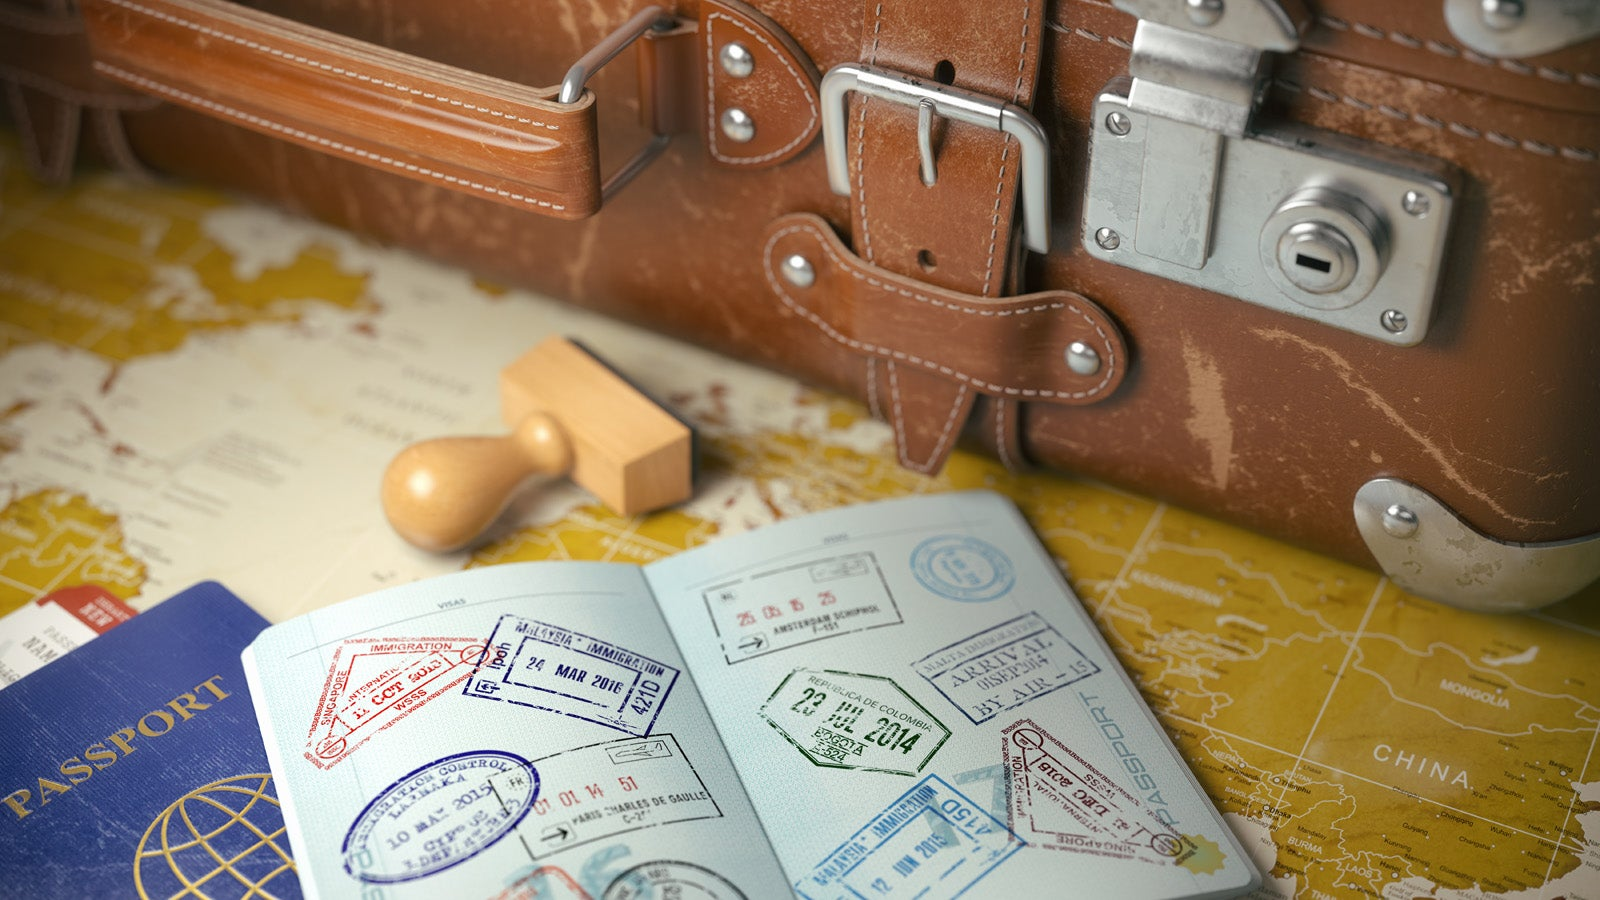 A suitcase next to an open passport showing lots of stamps